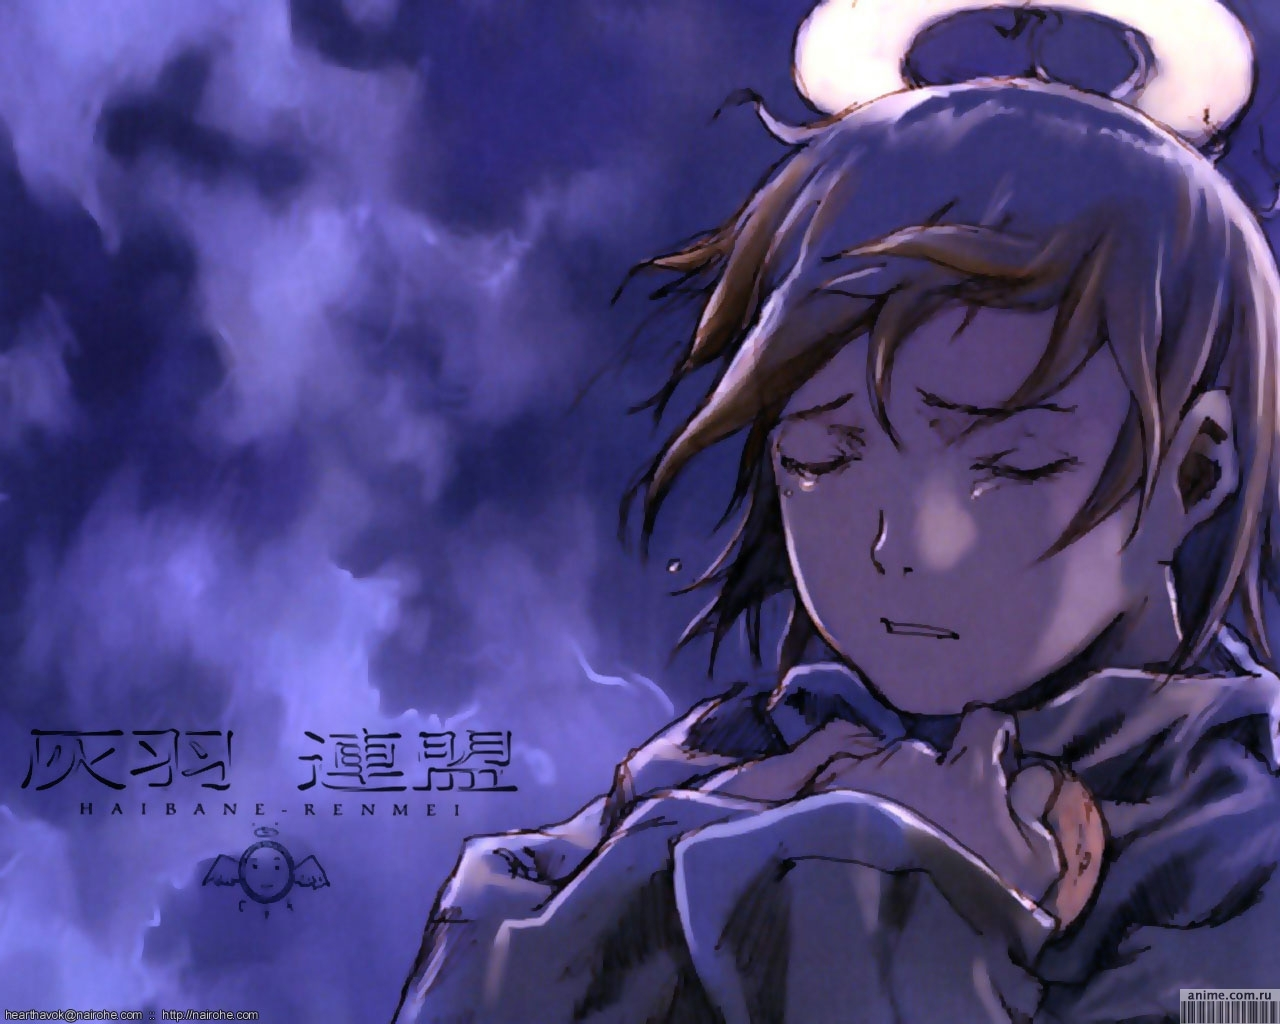 Pictures Haibane Renmei Anime